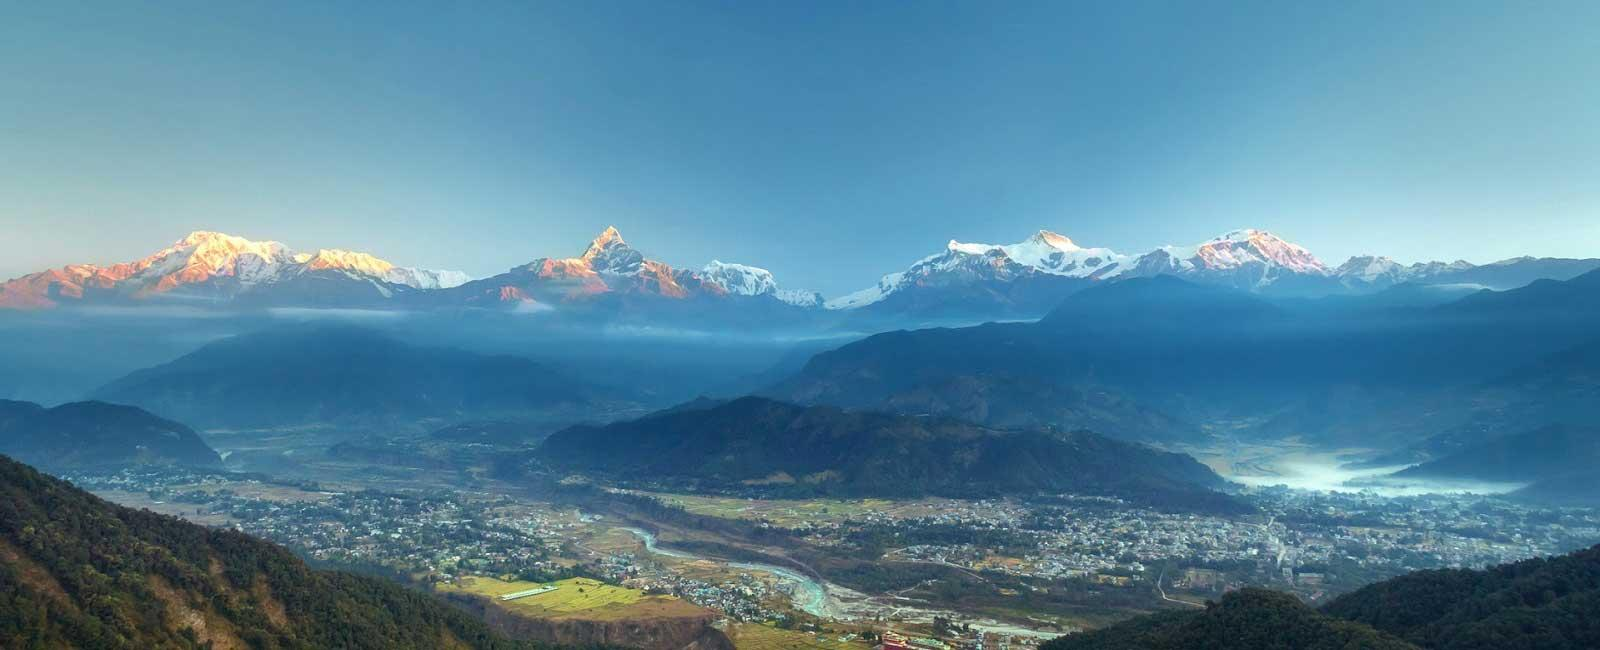 Nepal Highlights Tour